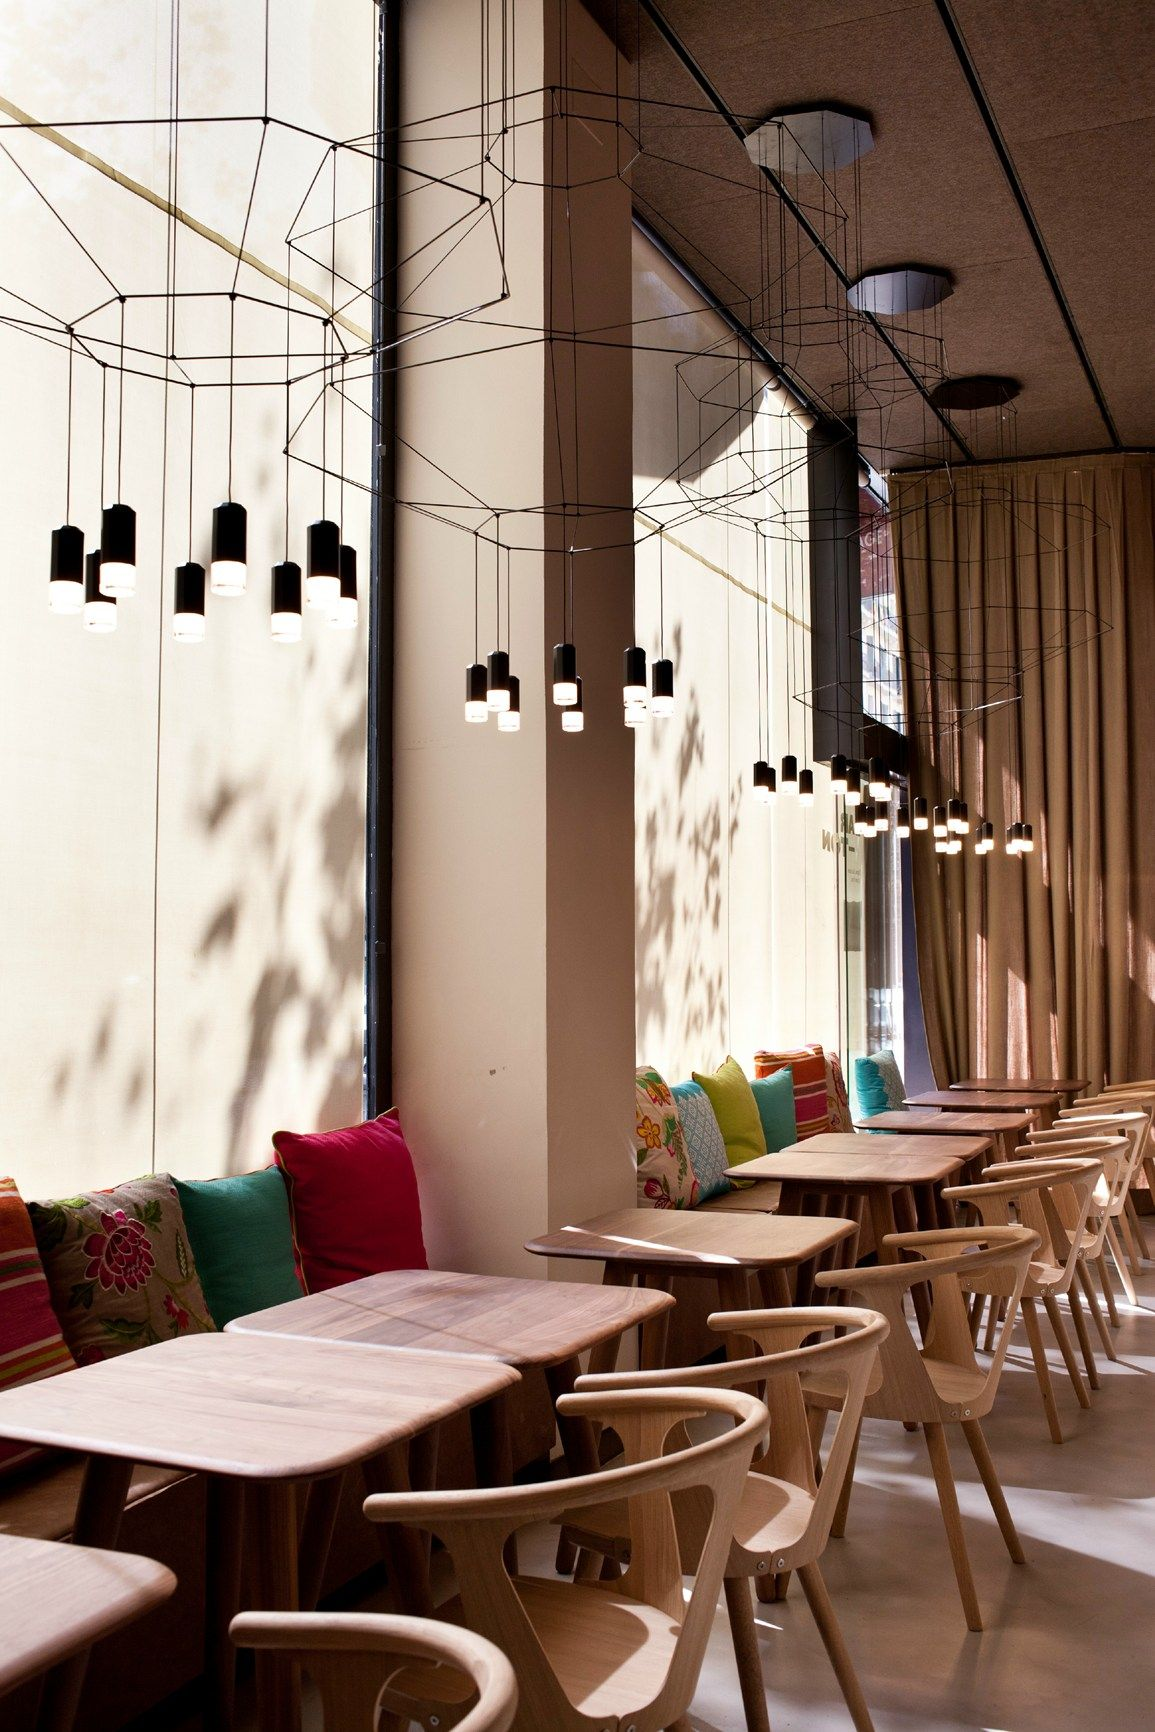 Barton, Barcelona Contemporary Cuisine And Eclectic Design  Wireflow By